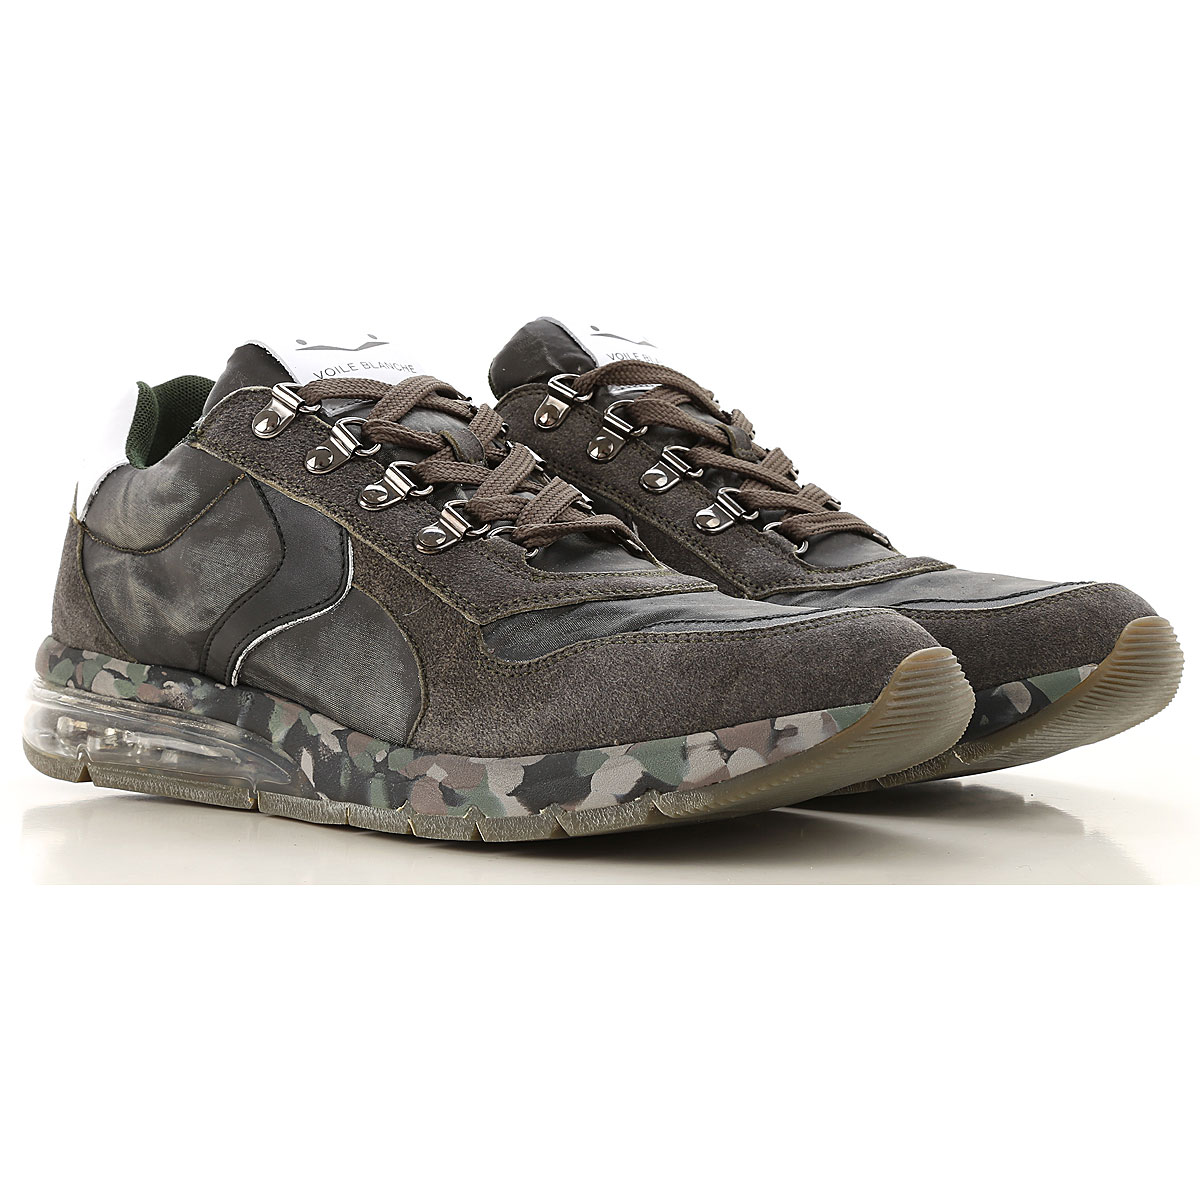 Voile Blanche Sneakers for Men On Sale, Dark Olive Green Shaded, Leather, 2019, 10 7.5 9